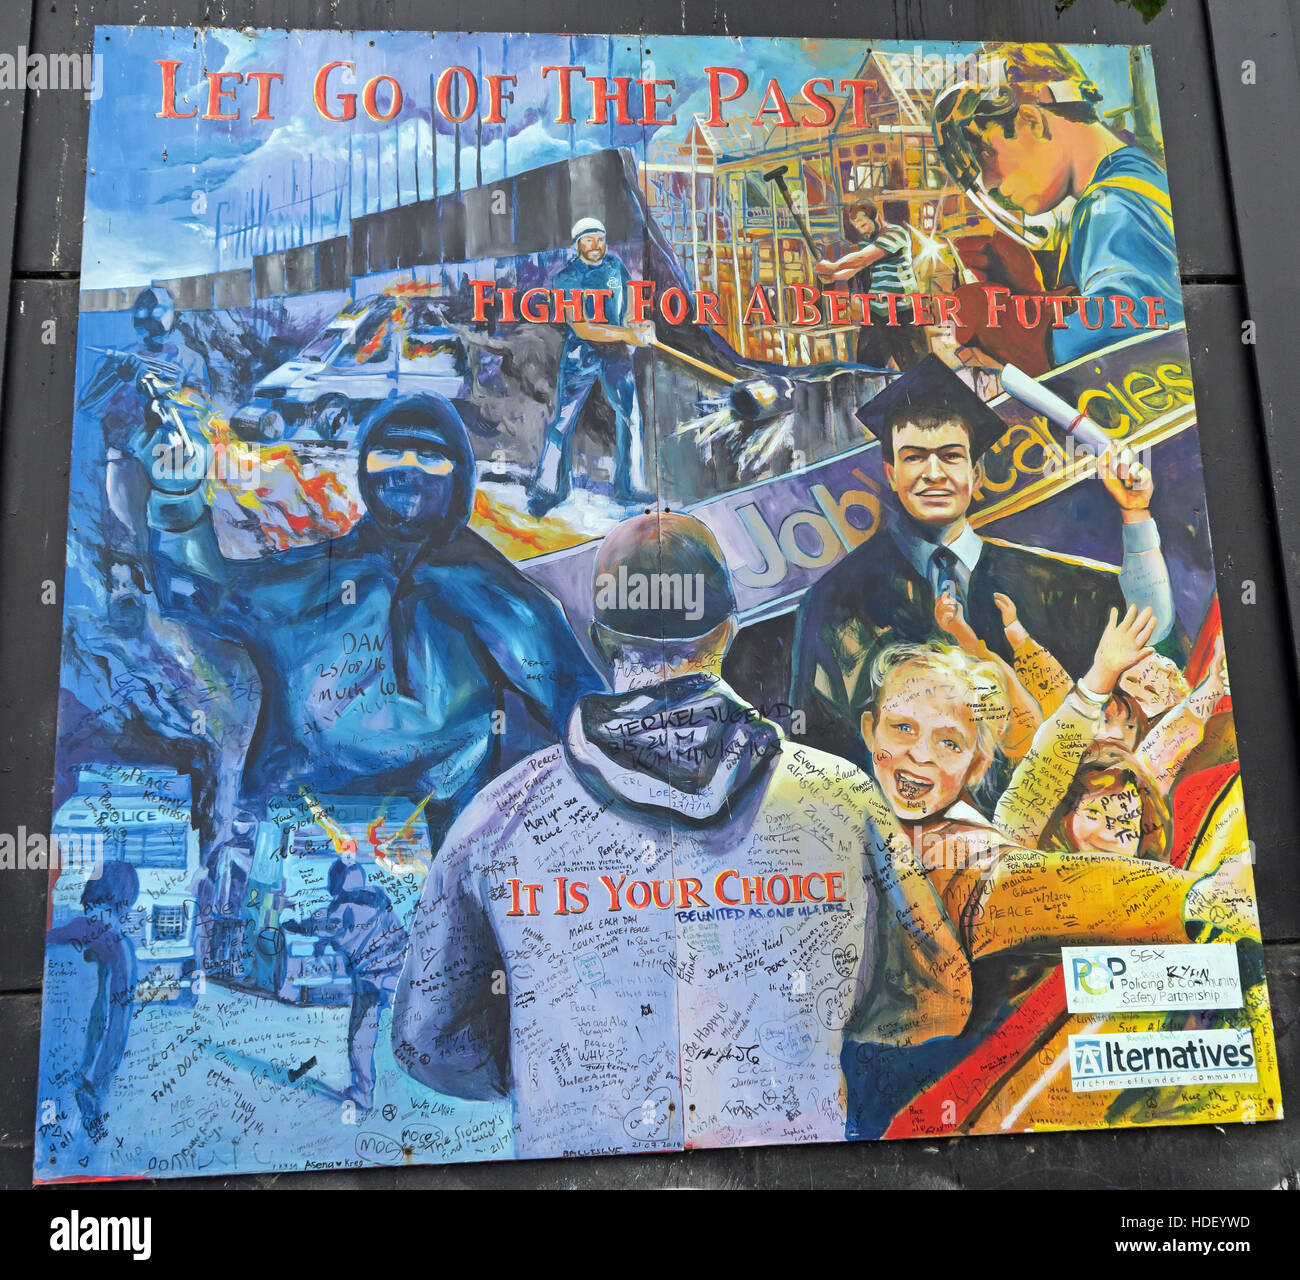 Let go of the past - International Peace Wall,Cupar Way,West Belfast  , Northern Ireland, UK - Stock Image